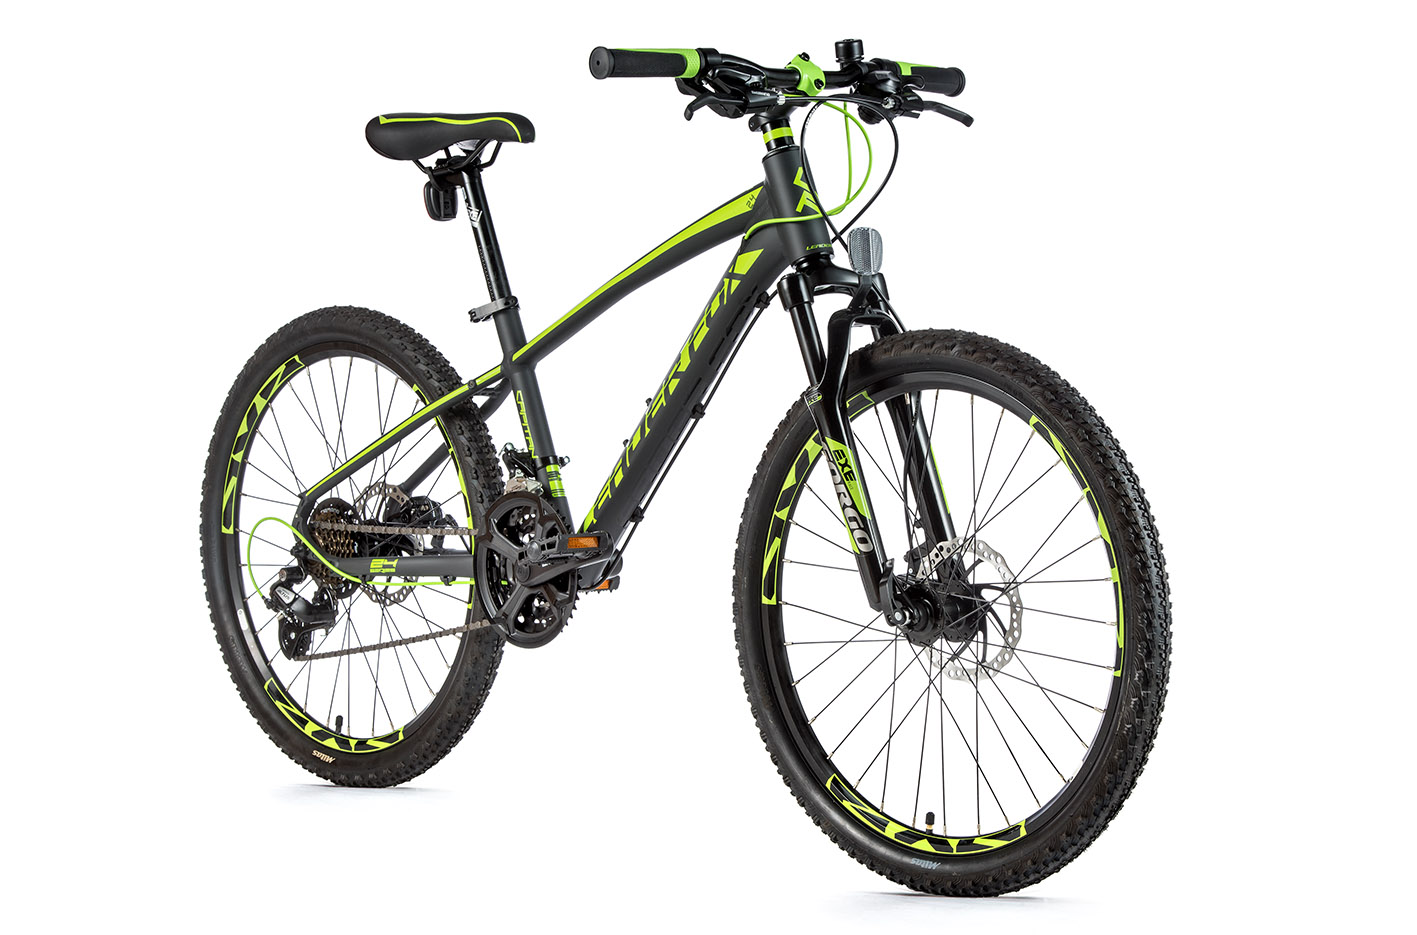 Bicicleta MTB 24 inch Leader Fox Capitan Boy, 2020